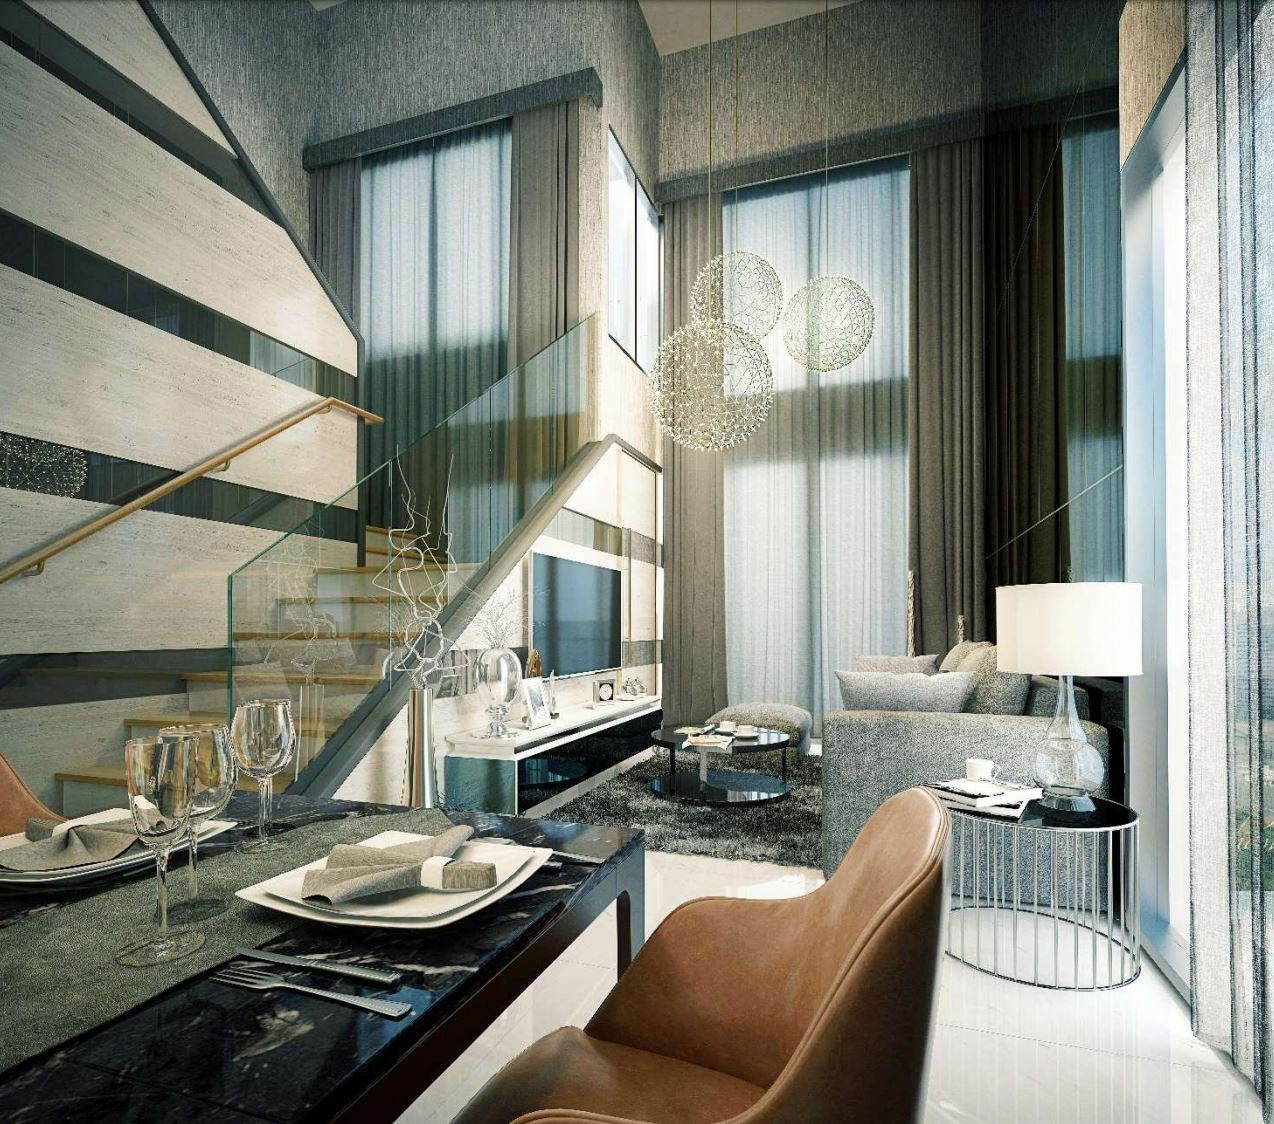 The Luxe KL Interior